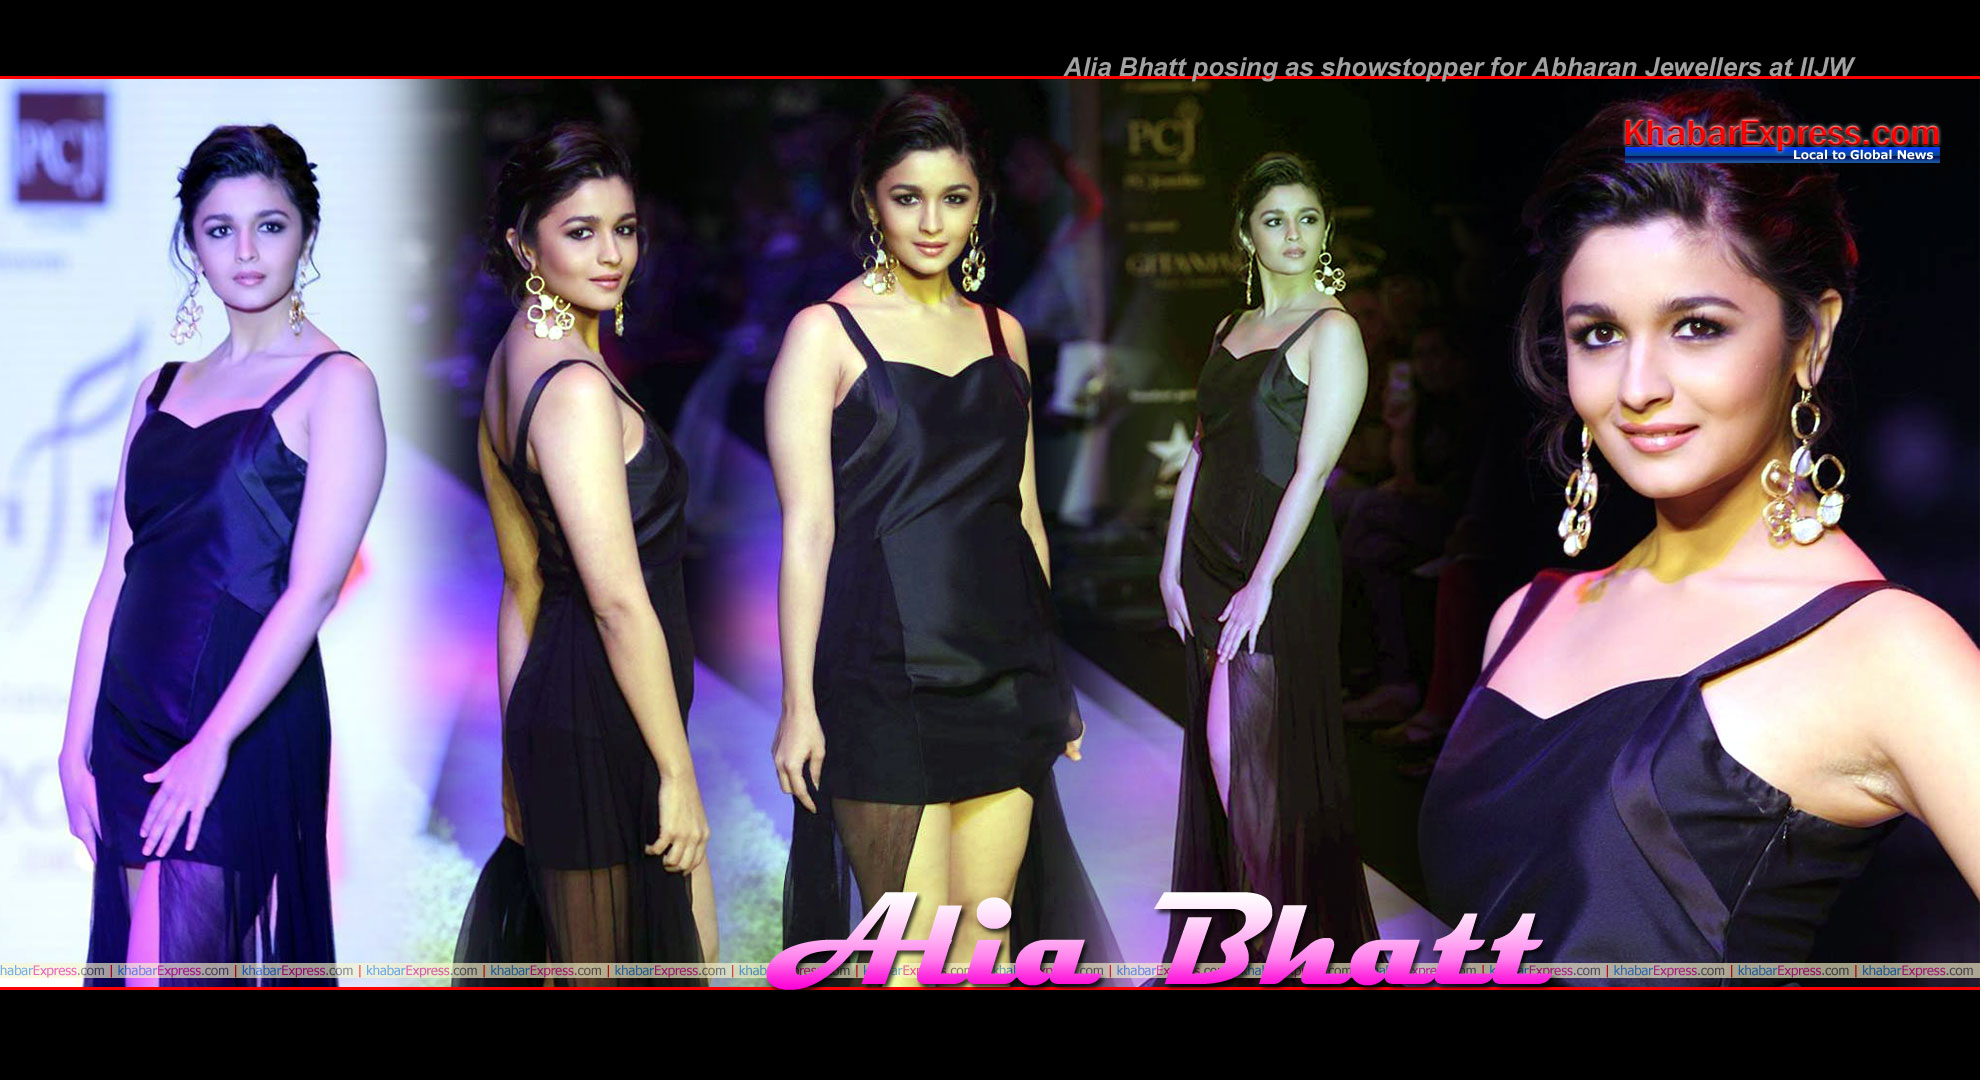 Bollywood hot and charming sensation Alia Bhatt